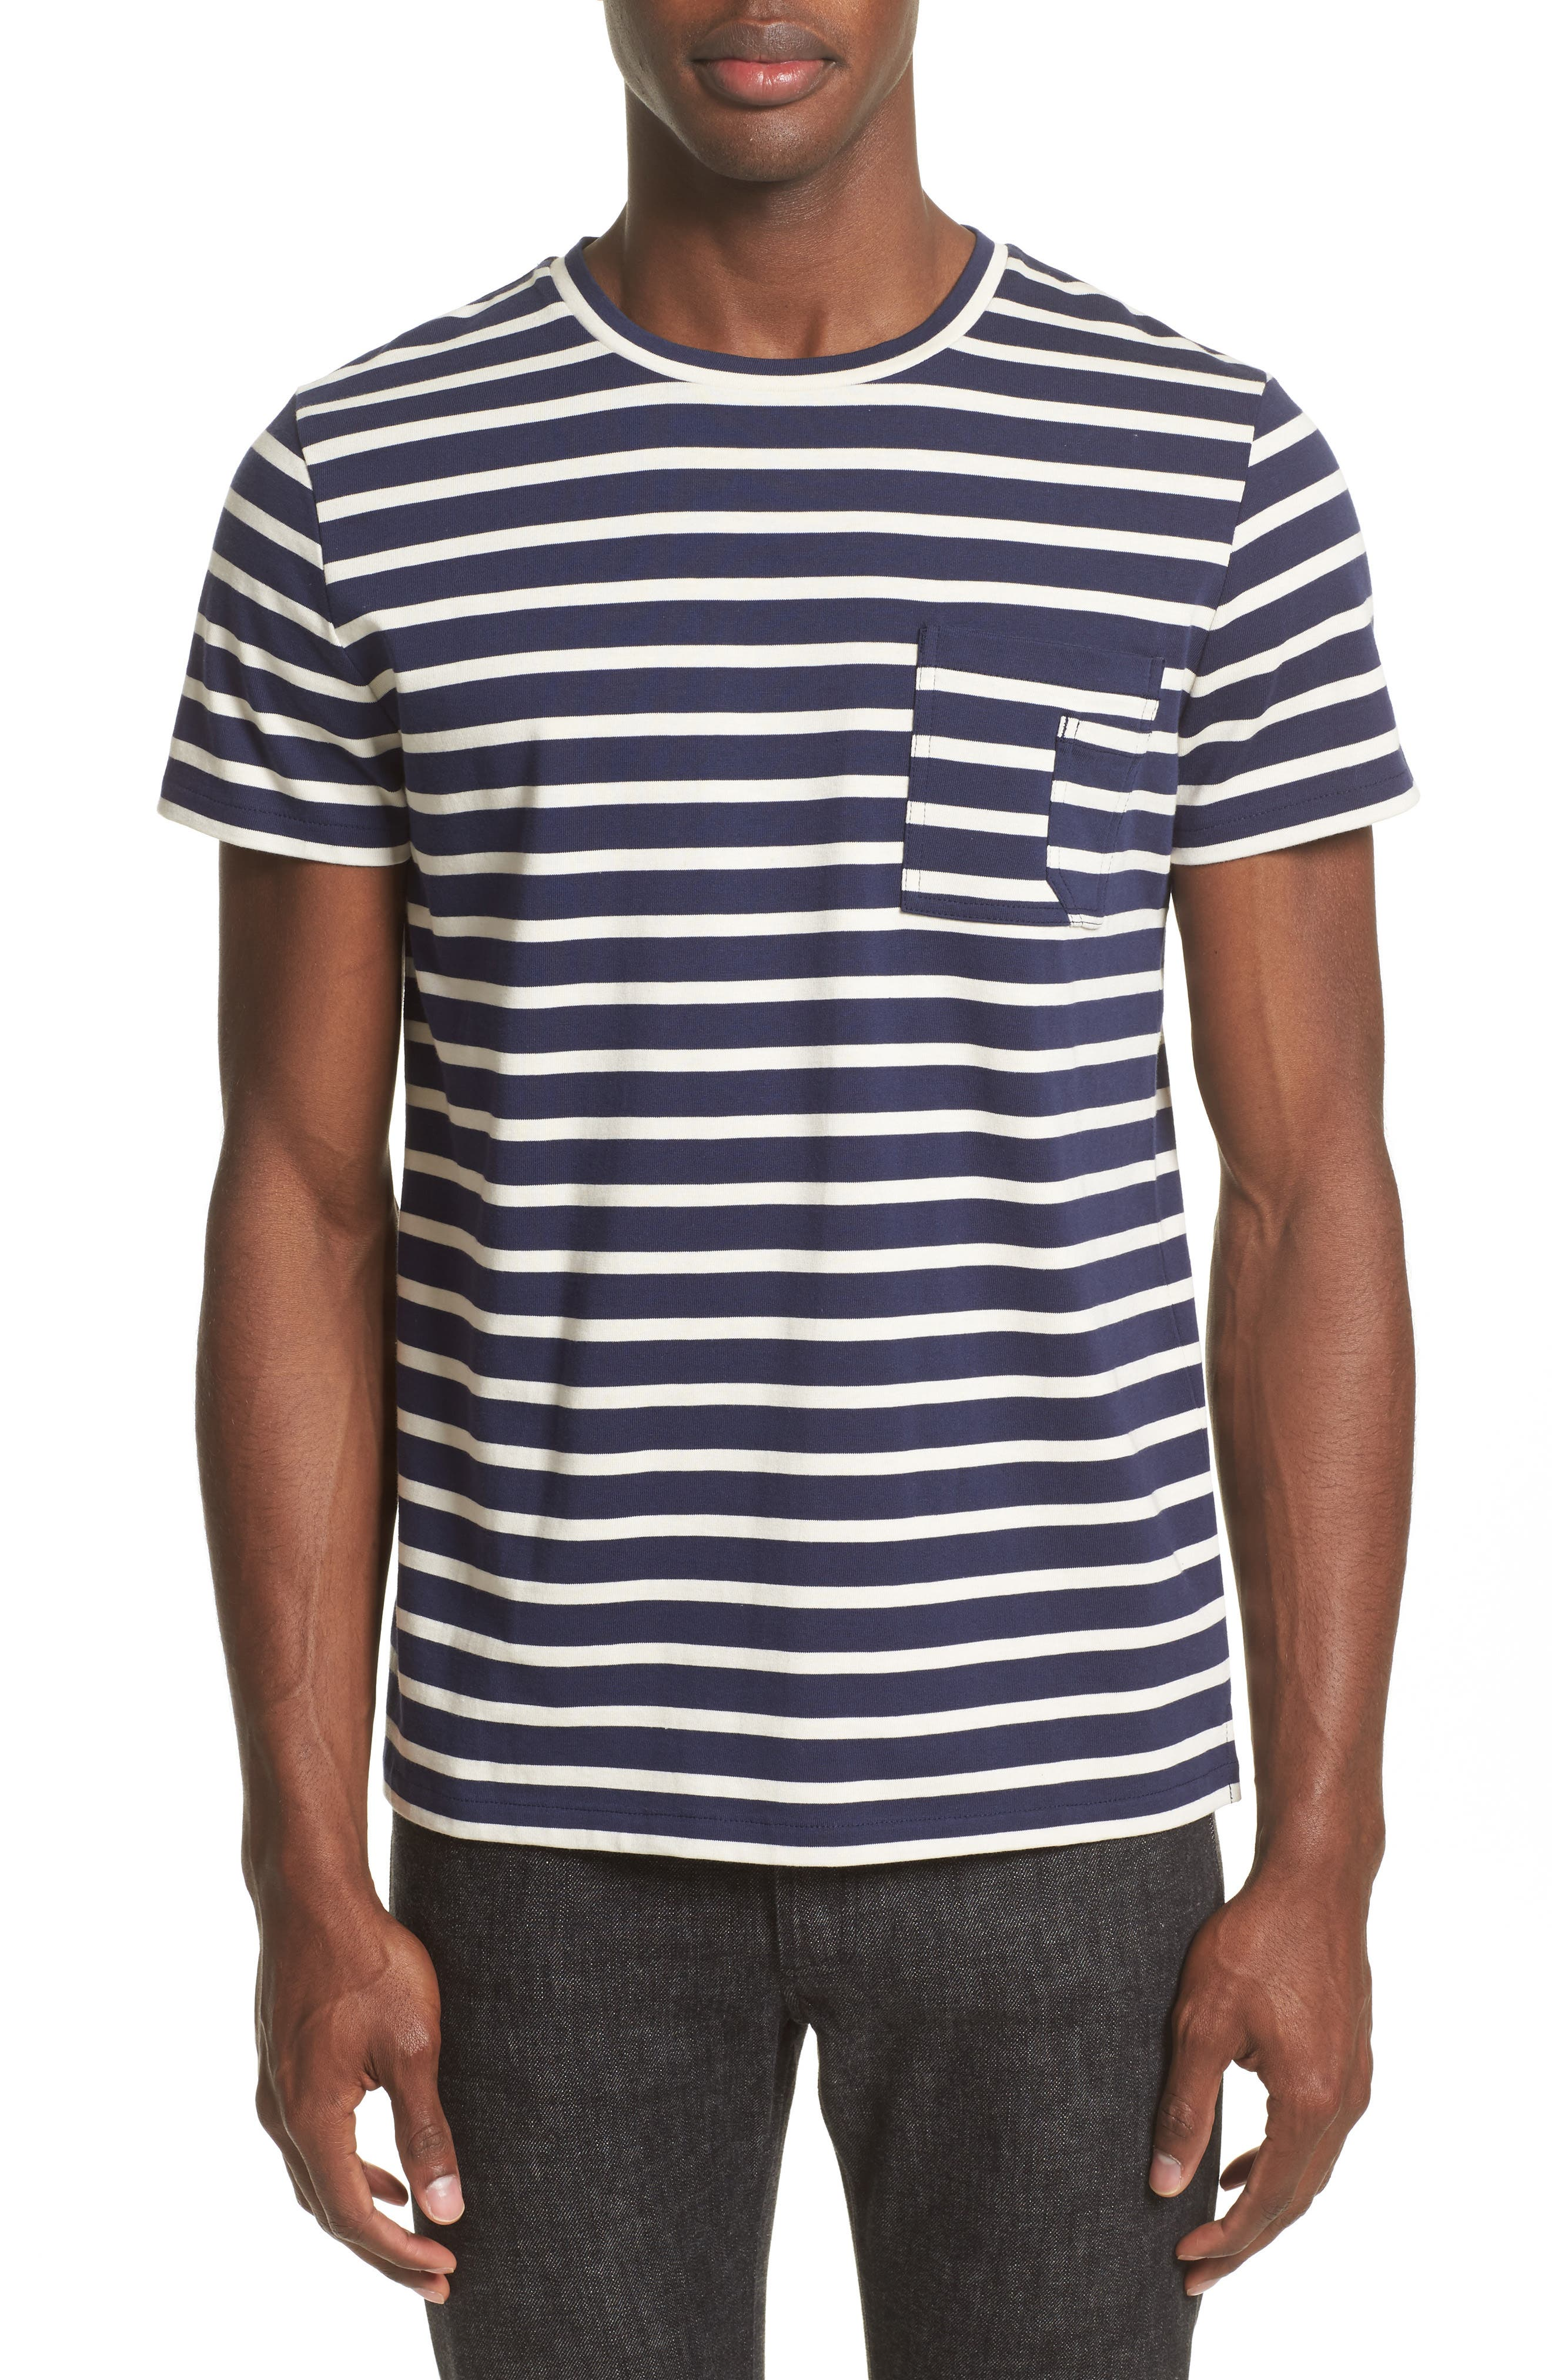 A.P.C. Stripe Pocket T-Shirt